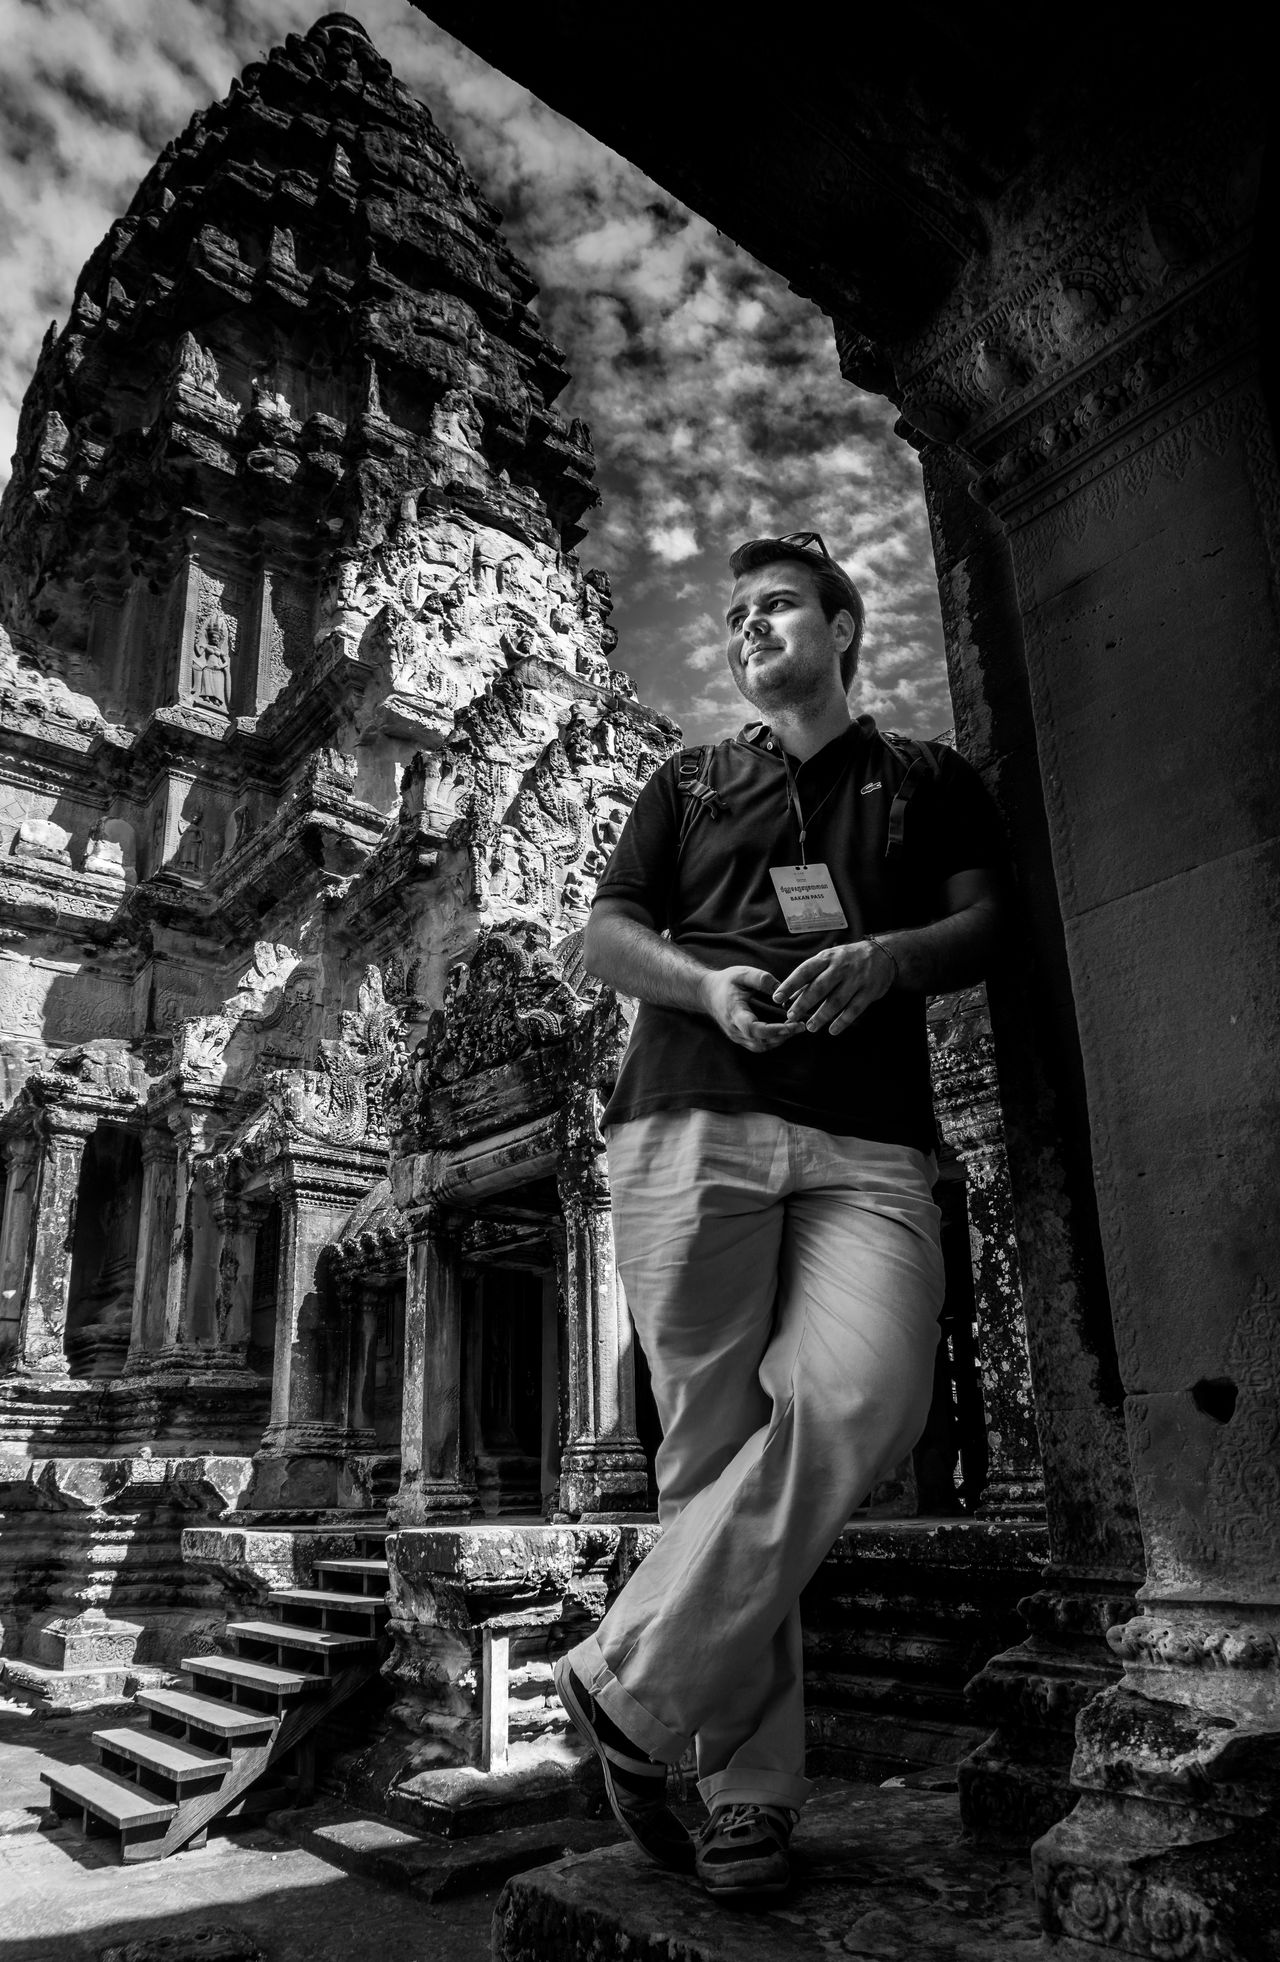 Feeling like the modern Indiana Jones (irony) Angkor Thom Angkor Wat B&w Black And White Buddhism Buddhist Temple Building Indiana Jones Man Man, Young, Male, Person, Adult, Color, Guy, Lifestyle, People, Caucasian, Retro, Effect, Vintage, Background, Casual, Leisure, Portrait, Glasses, Fashion, Texture, Outdoor, Happiness, Handsome, Summer, Shine, Illuminated, Bright, Glitter, Light, Glow, Sh Modern Person Temple Tourism Tourist Tourist Attraction  Tower Travel Visitor